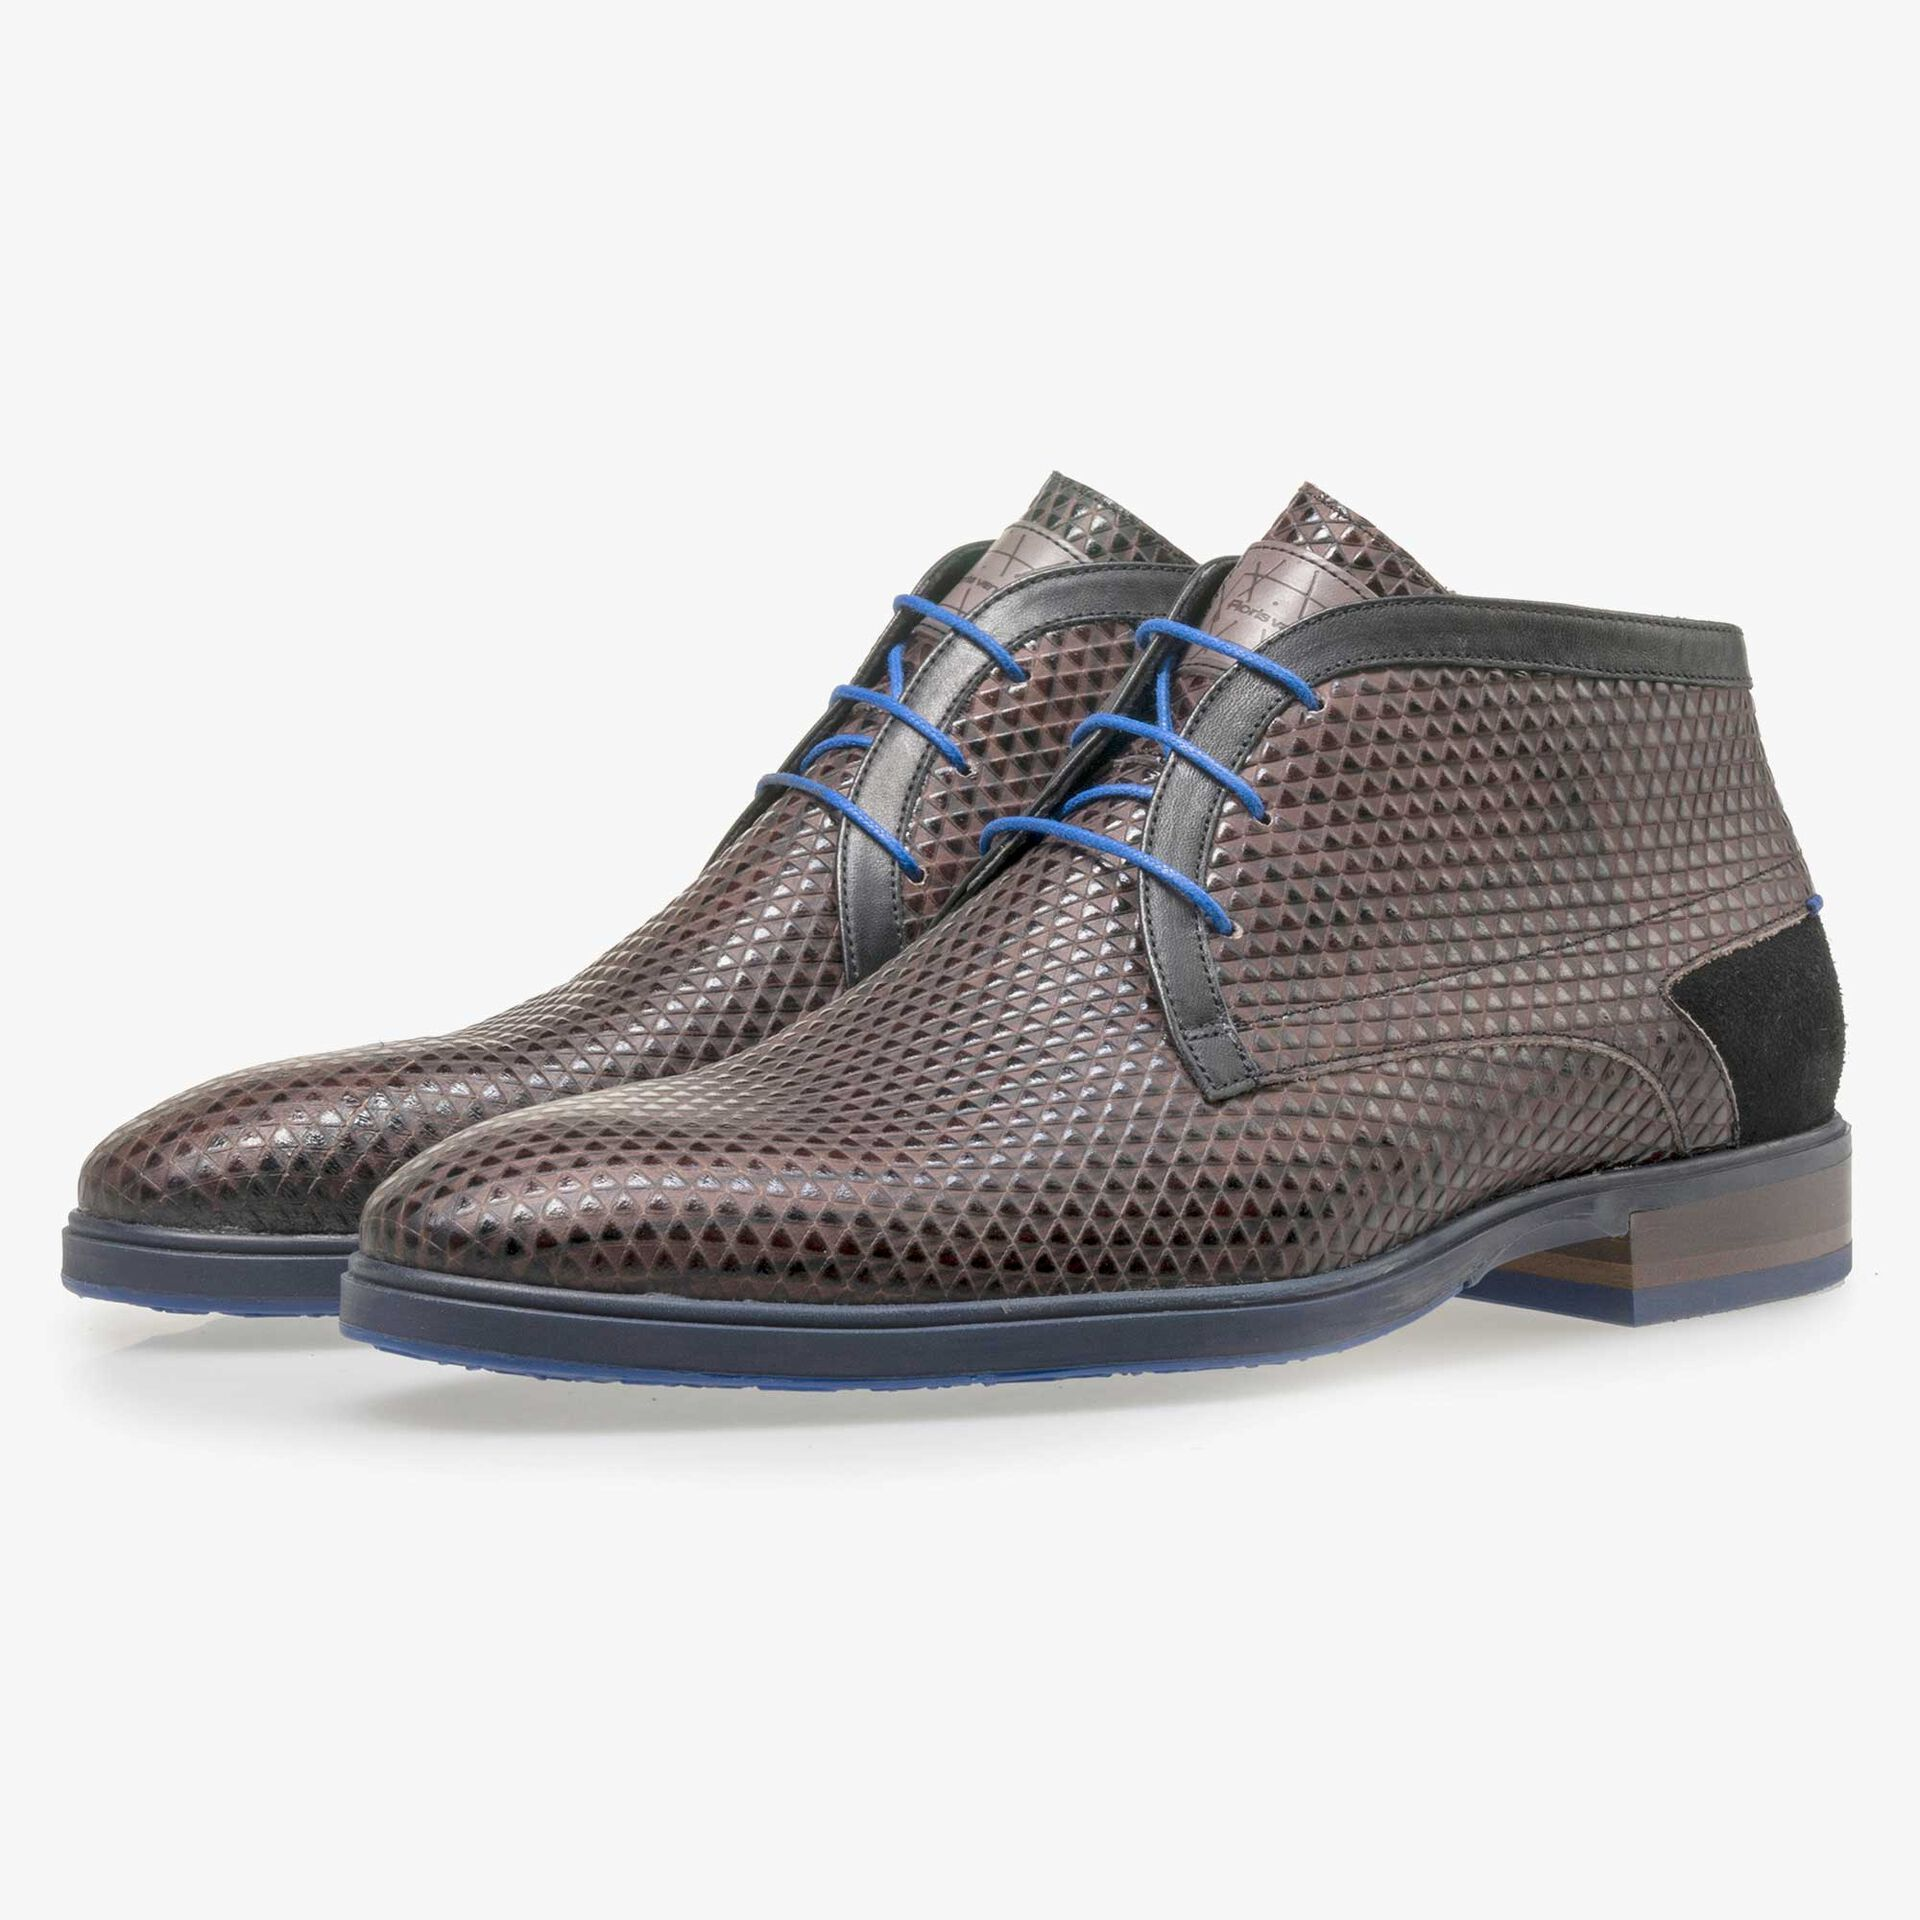 Floris van Bommel men's brown lace boot finished with a triangular pattern